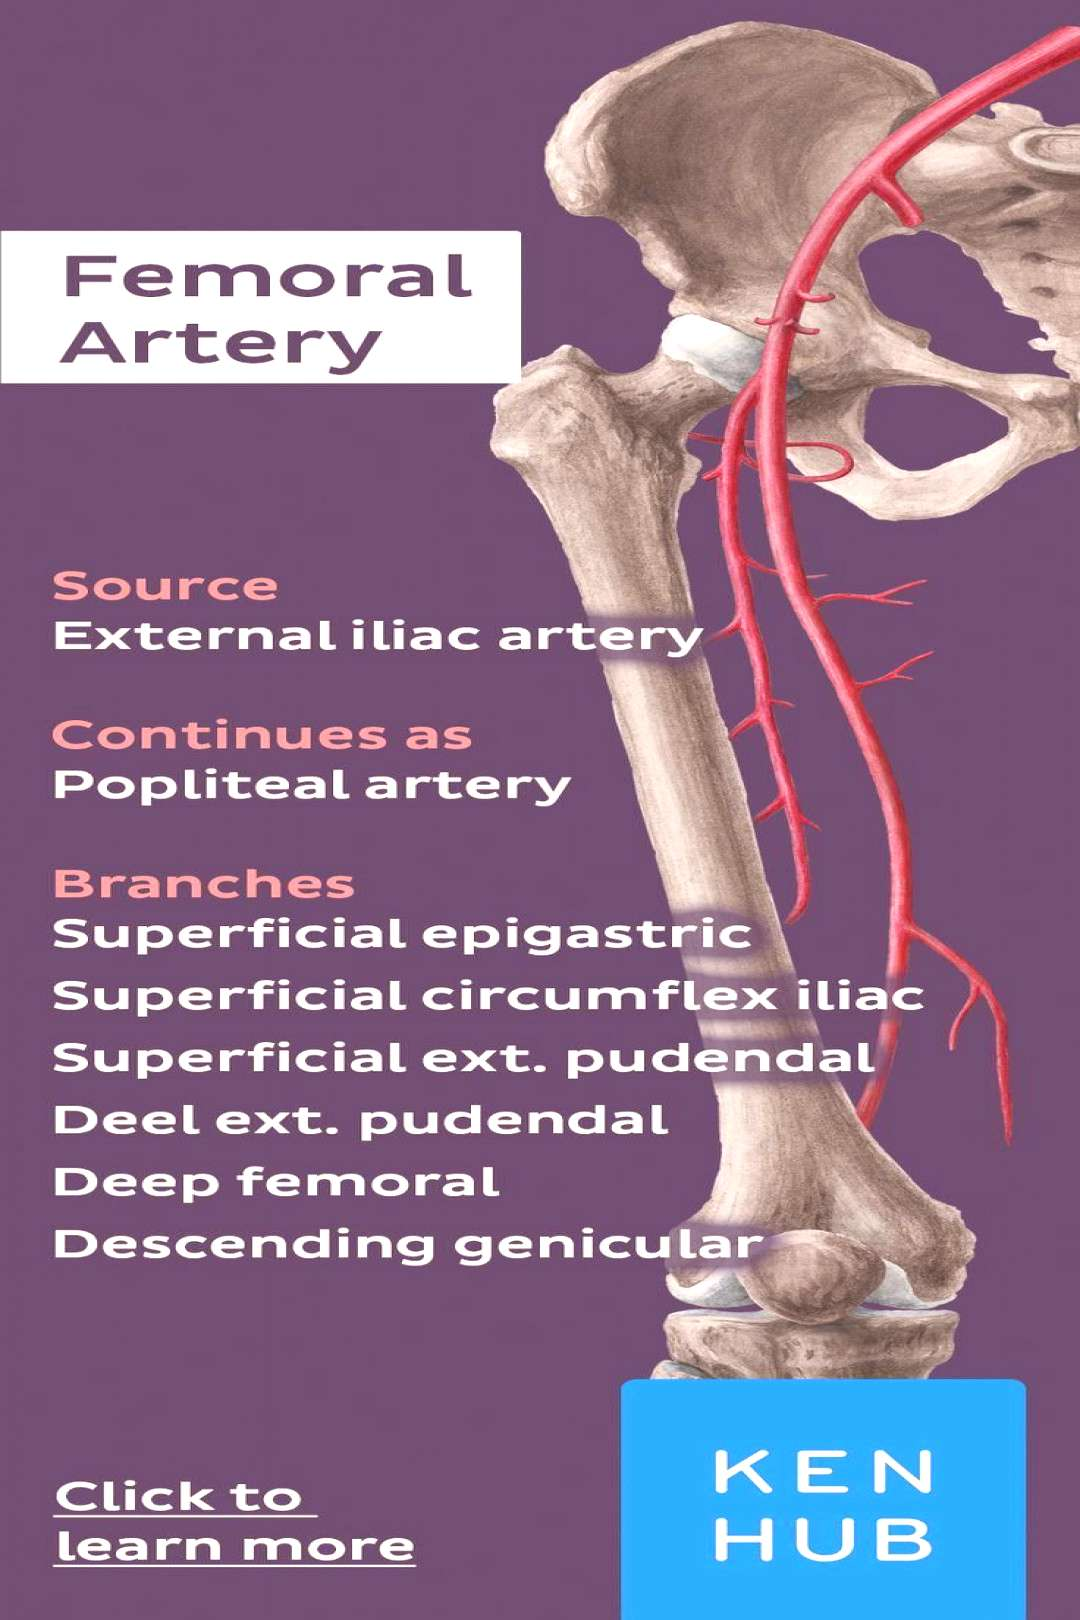 The femoral artery is a continuation of the external iliac artery and constitutes the major blood s